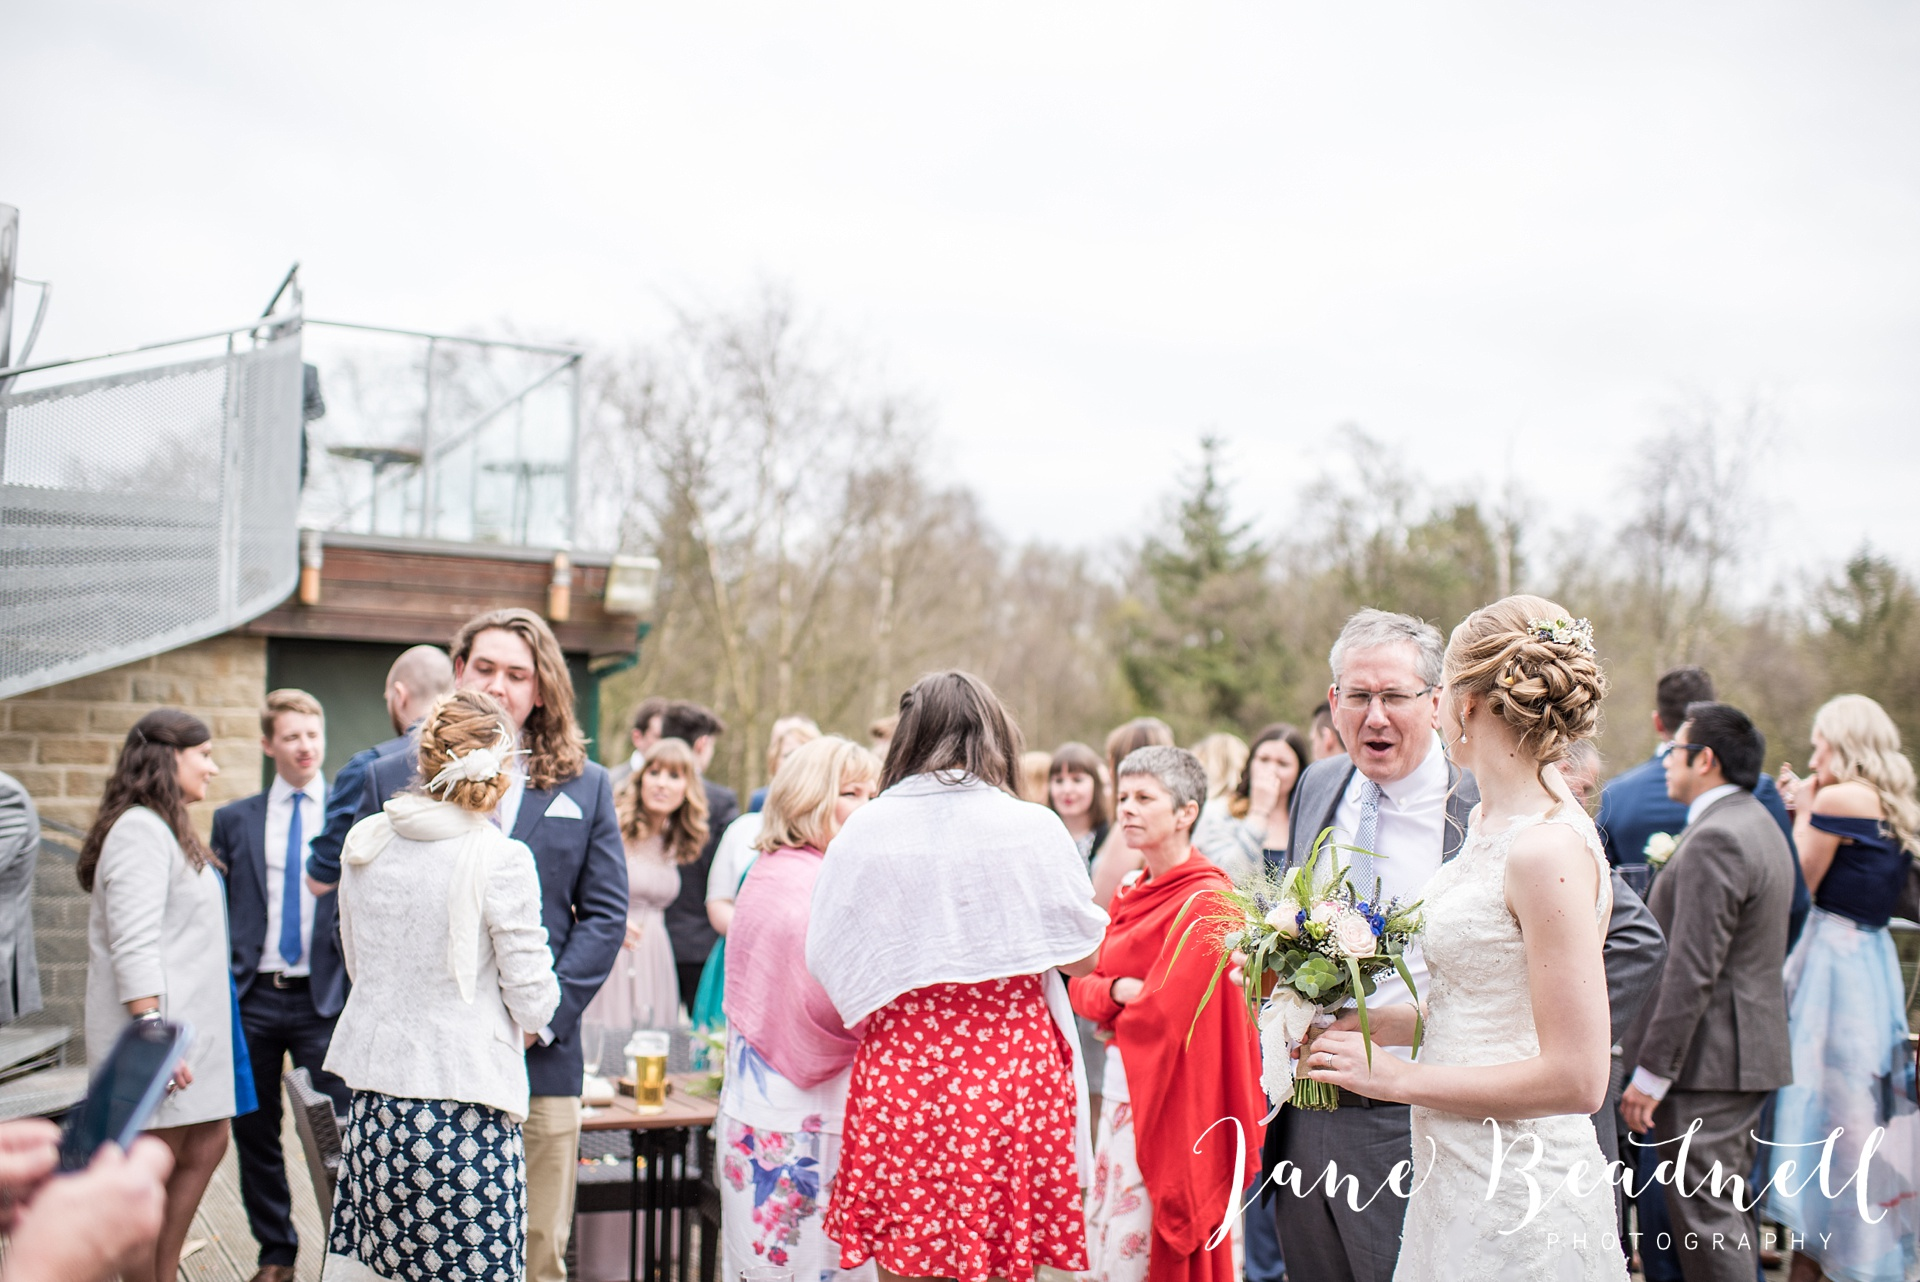 Otley Chevin Lodge wedding photography by Jane Beadnell Photography Leeds_0076